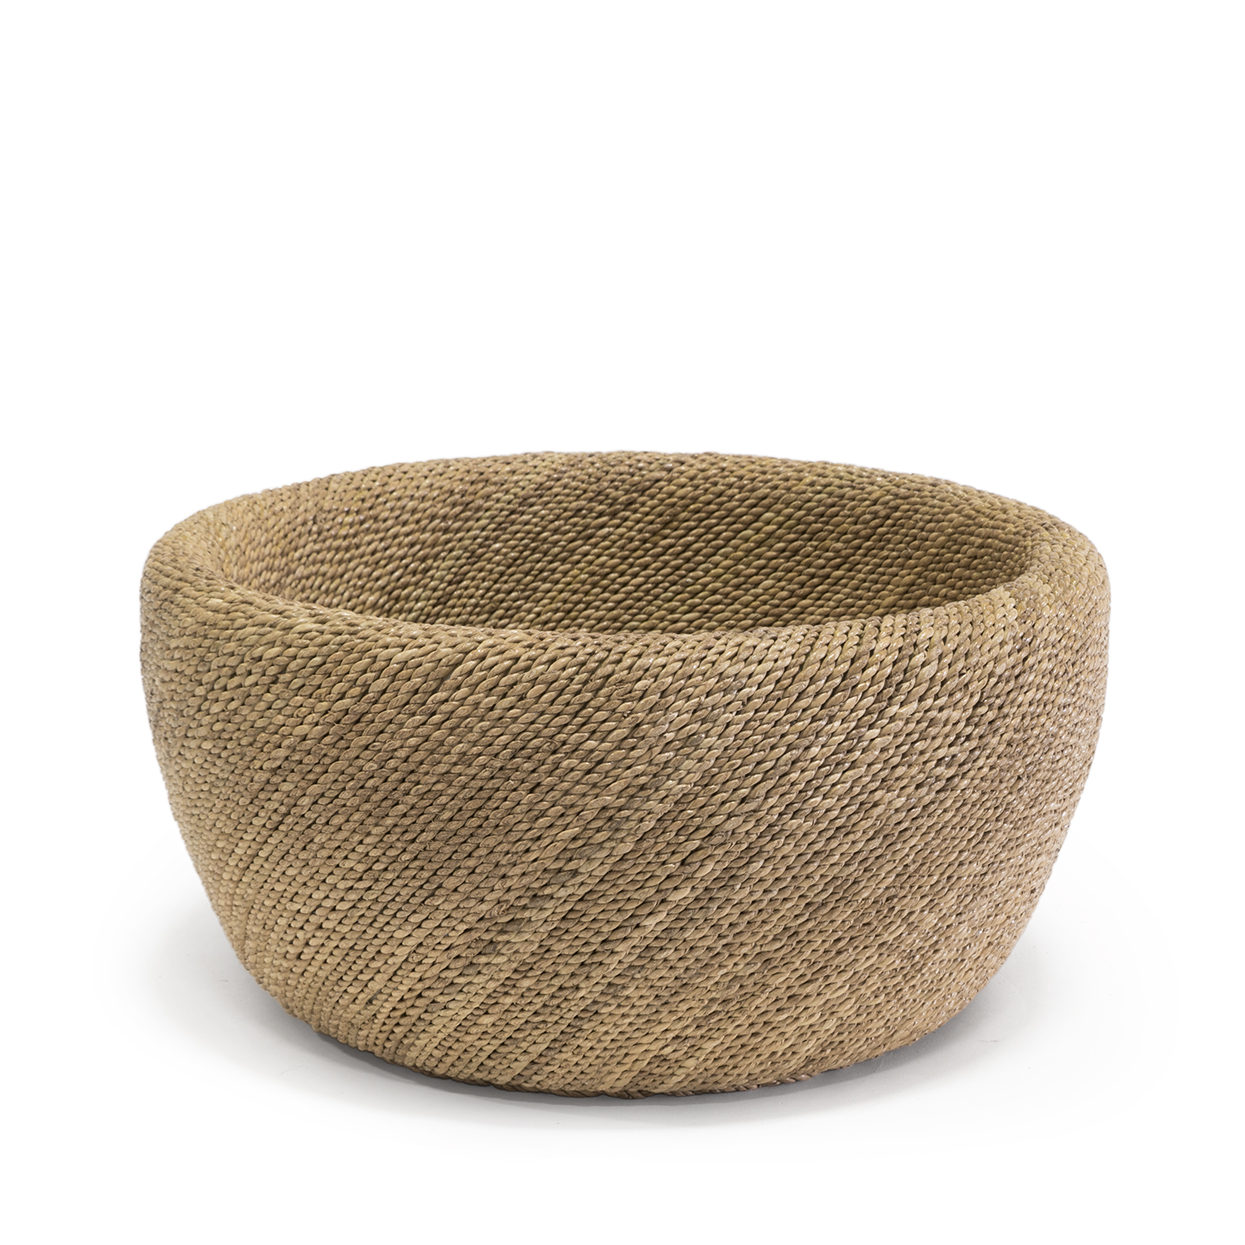 Woven Rope Bowl   18dx8h  P300601